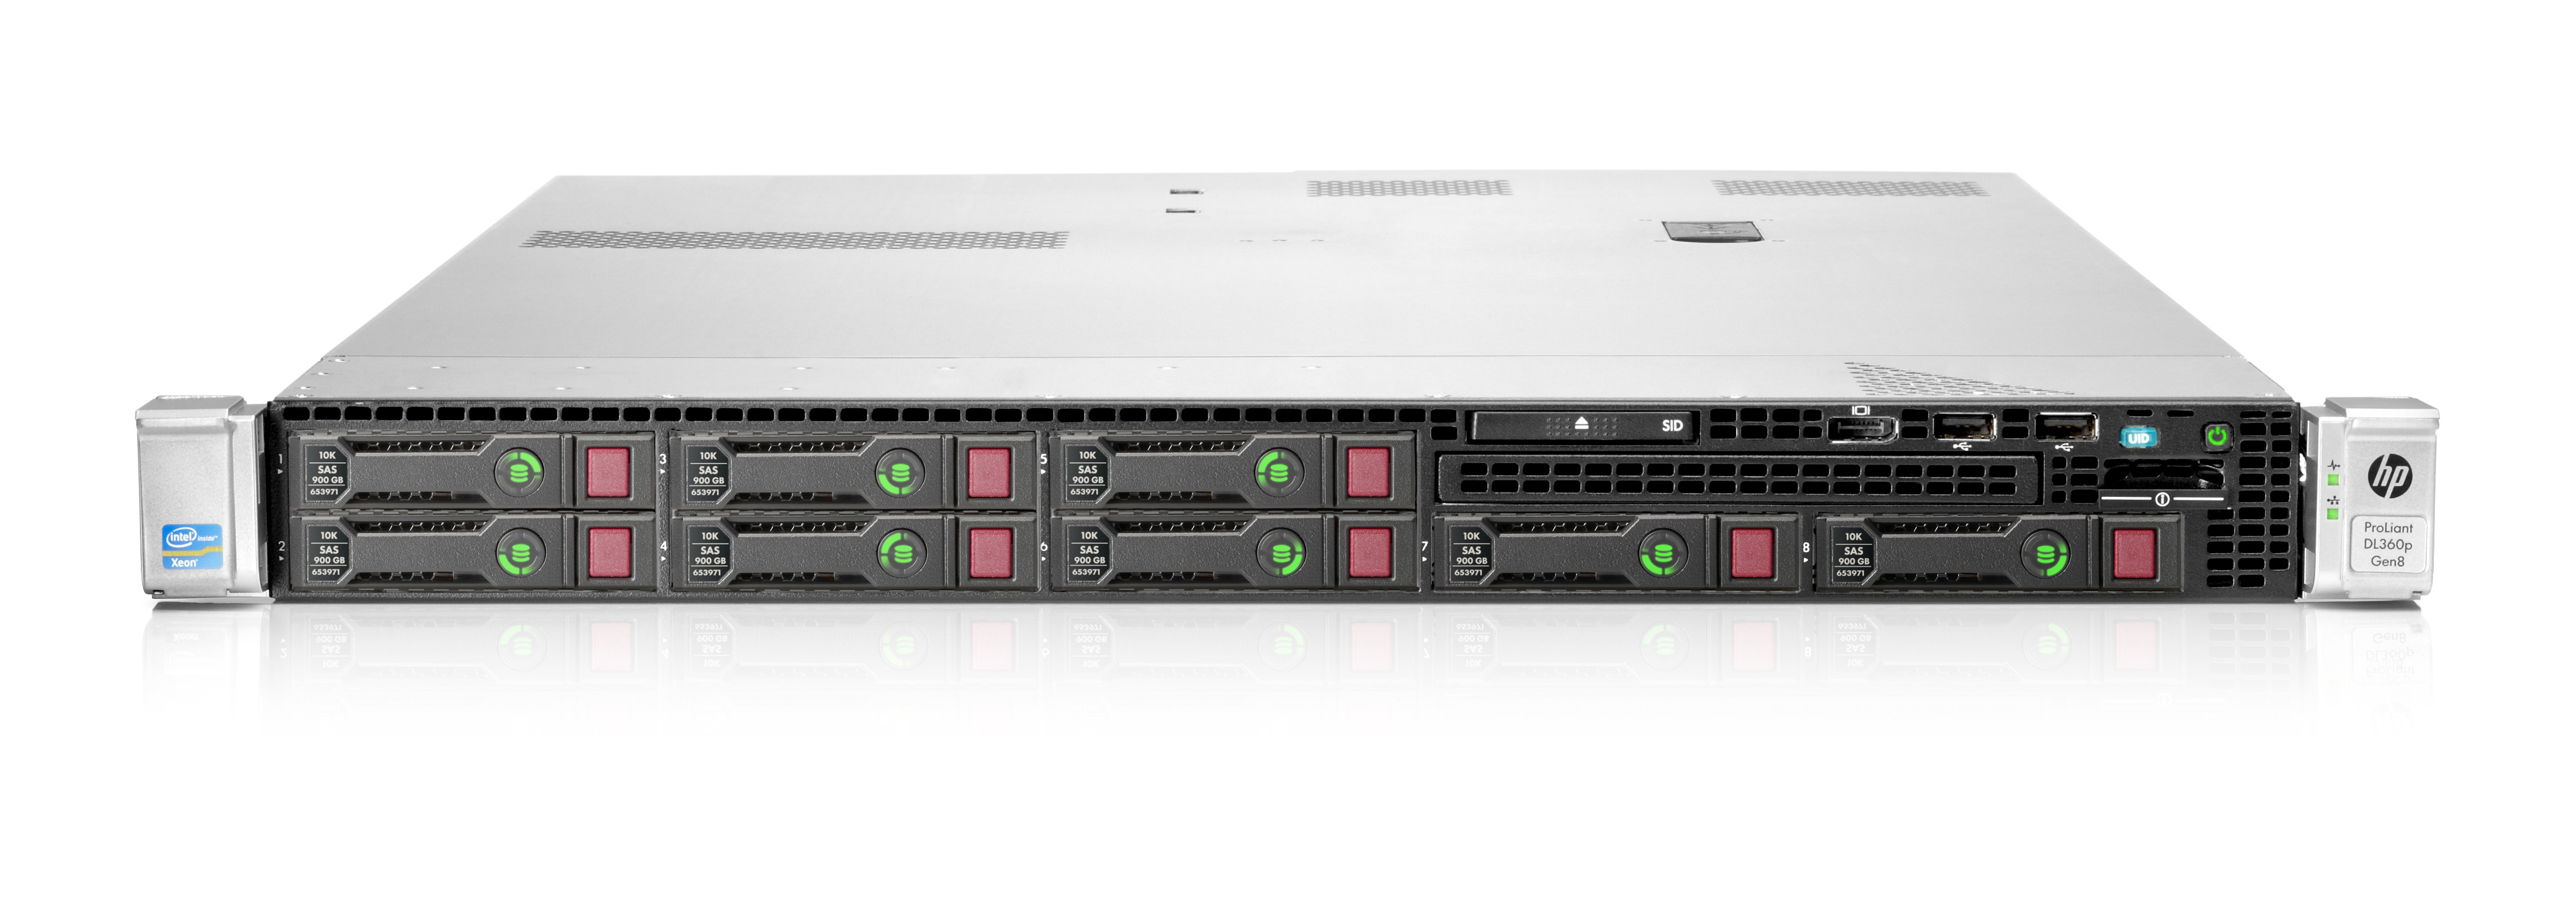 HP ProLiant DL360p Gen8 Server/TV Xeon E5 (2630) 2.3GHz (2P) 16GB-R (noHDD) P420i SFF with 460W Power Supply